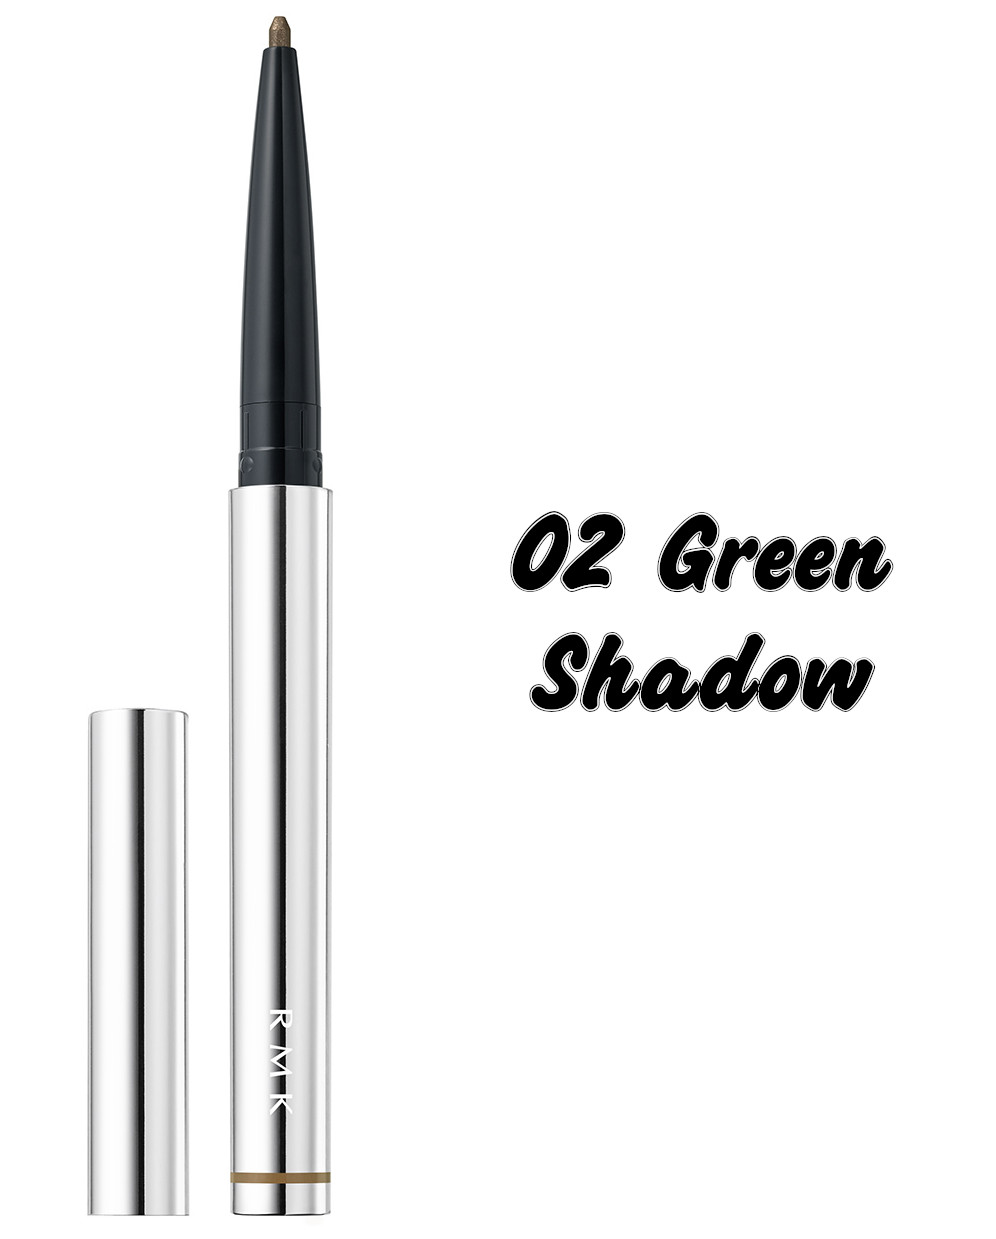 RMK The Now Now Summer 2021 Collection Soft Metallic Eye Pencil 02 Green Shadow